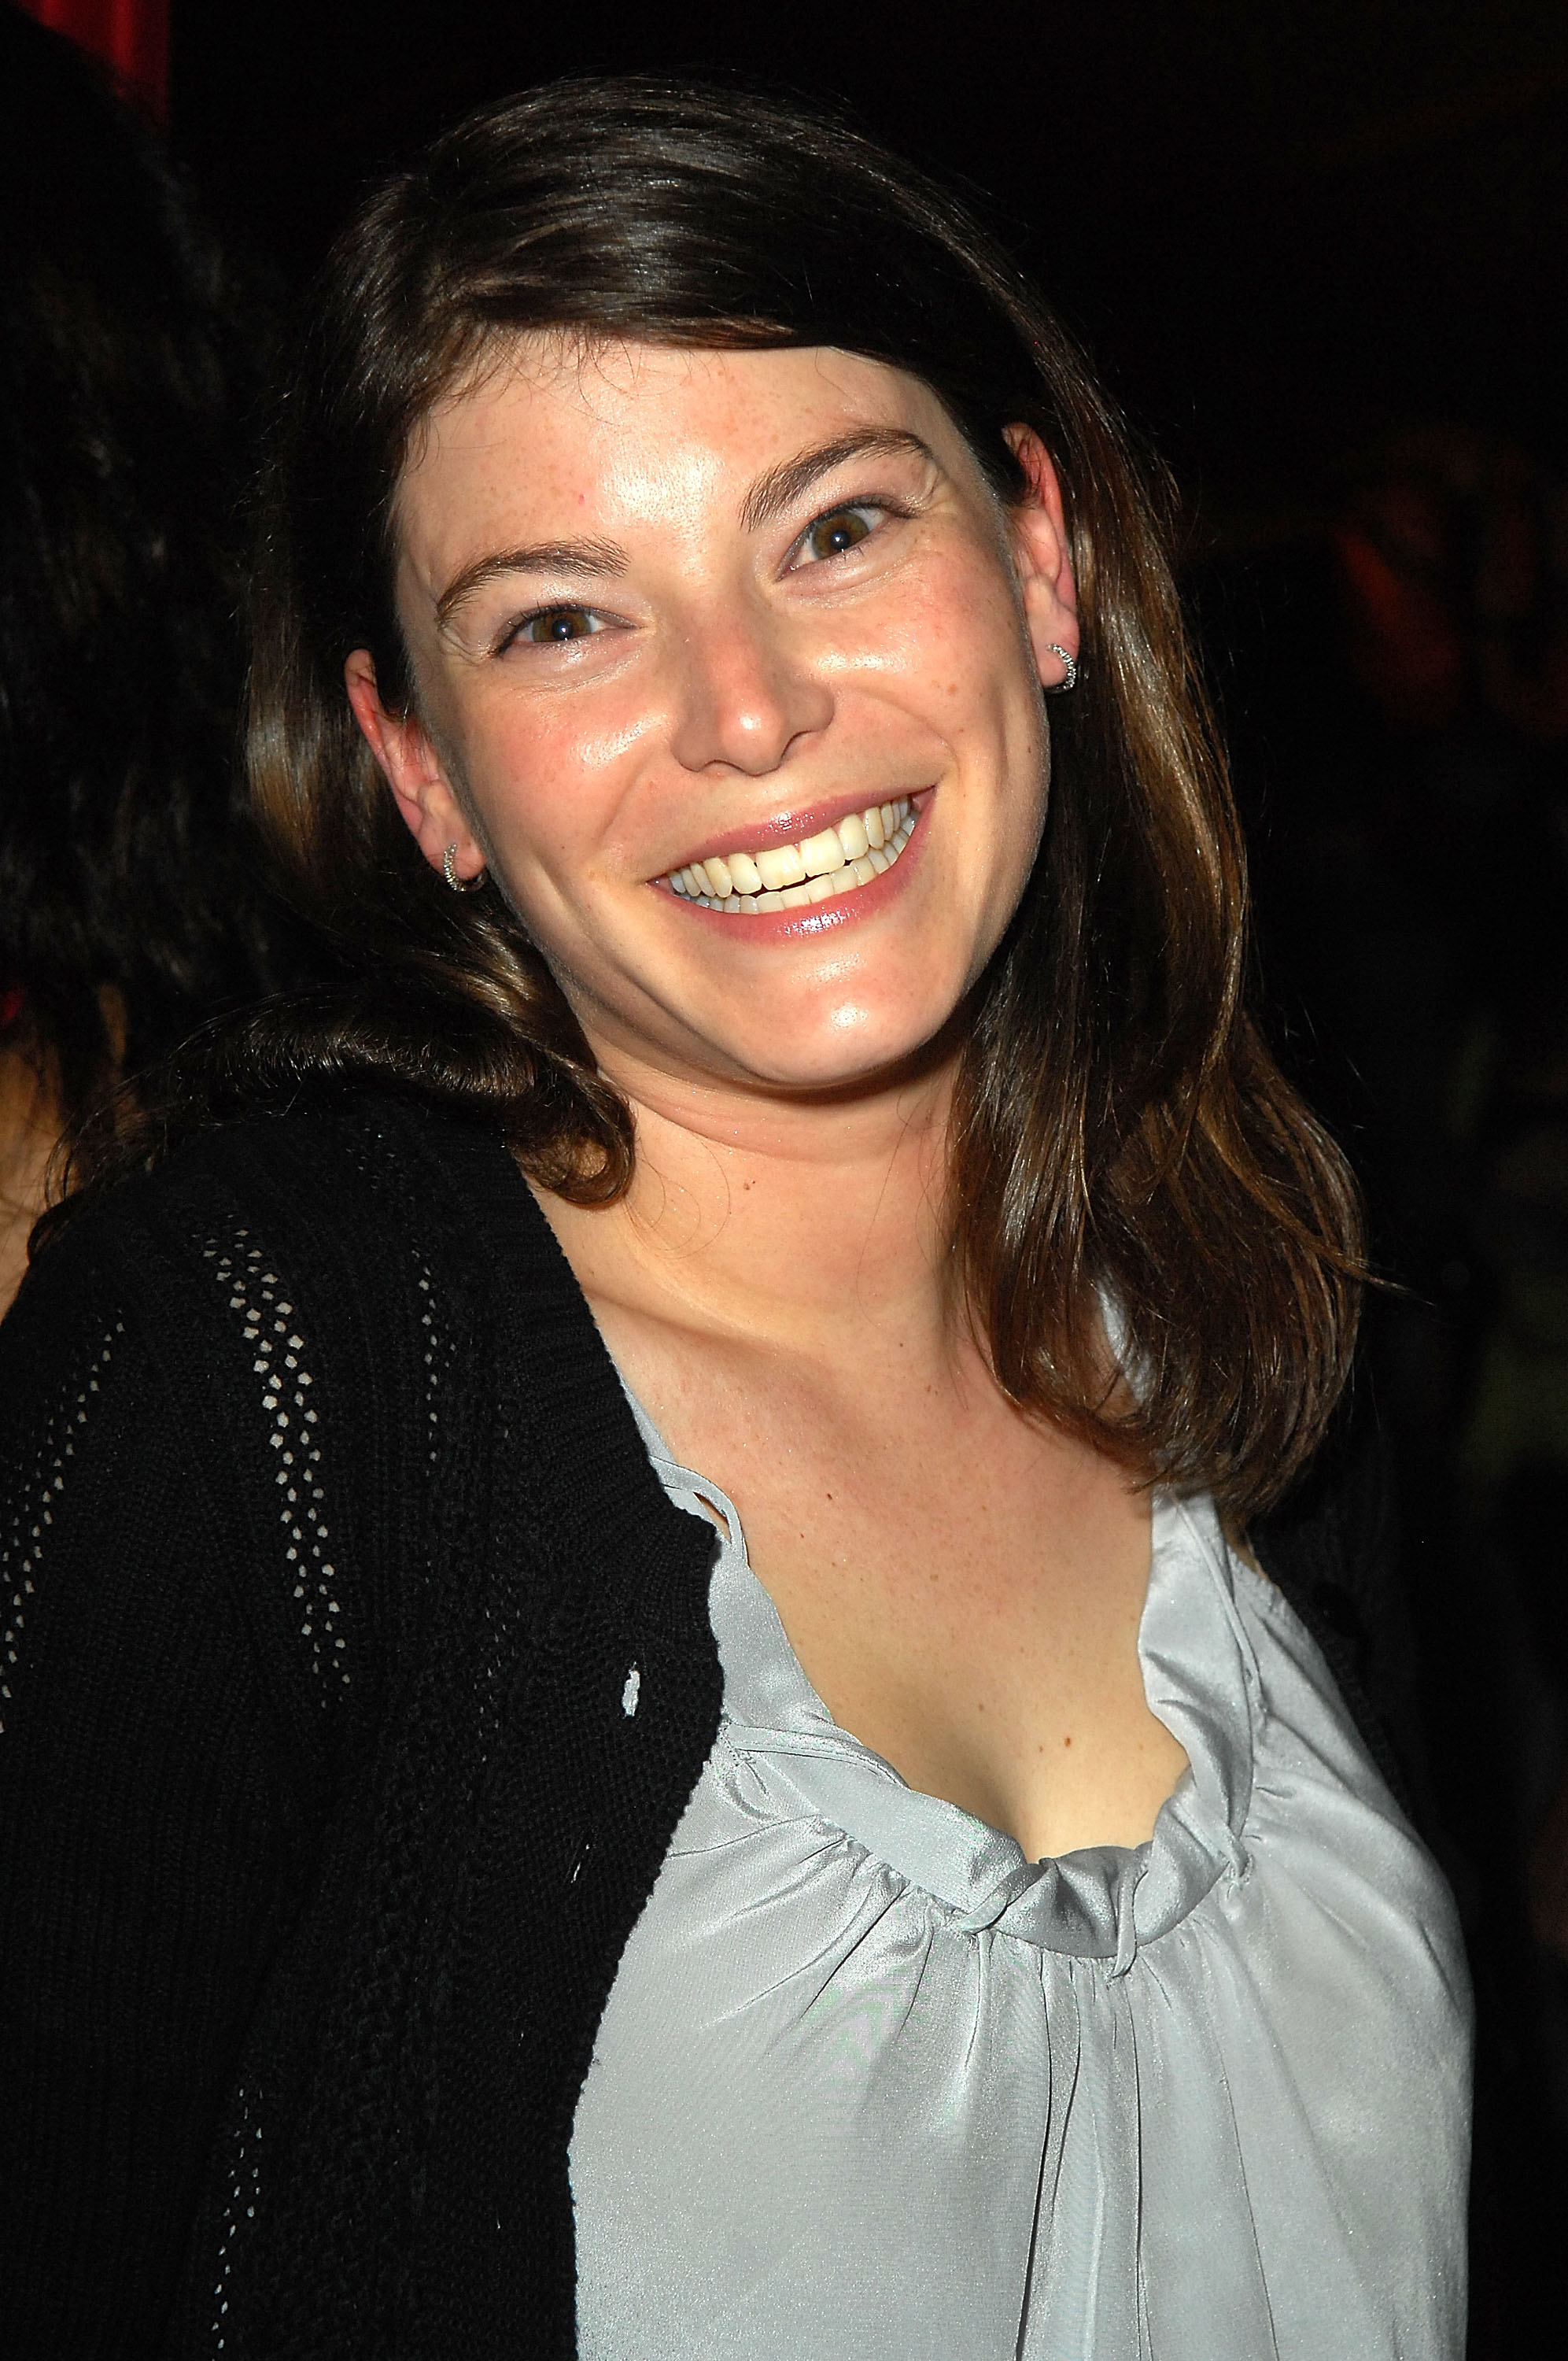 Top Chef Judge Gail Simmons